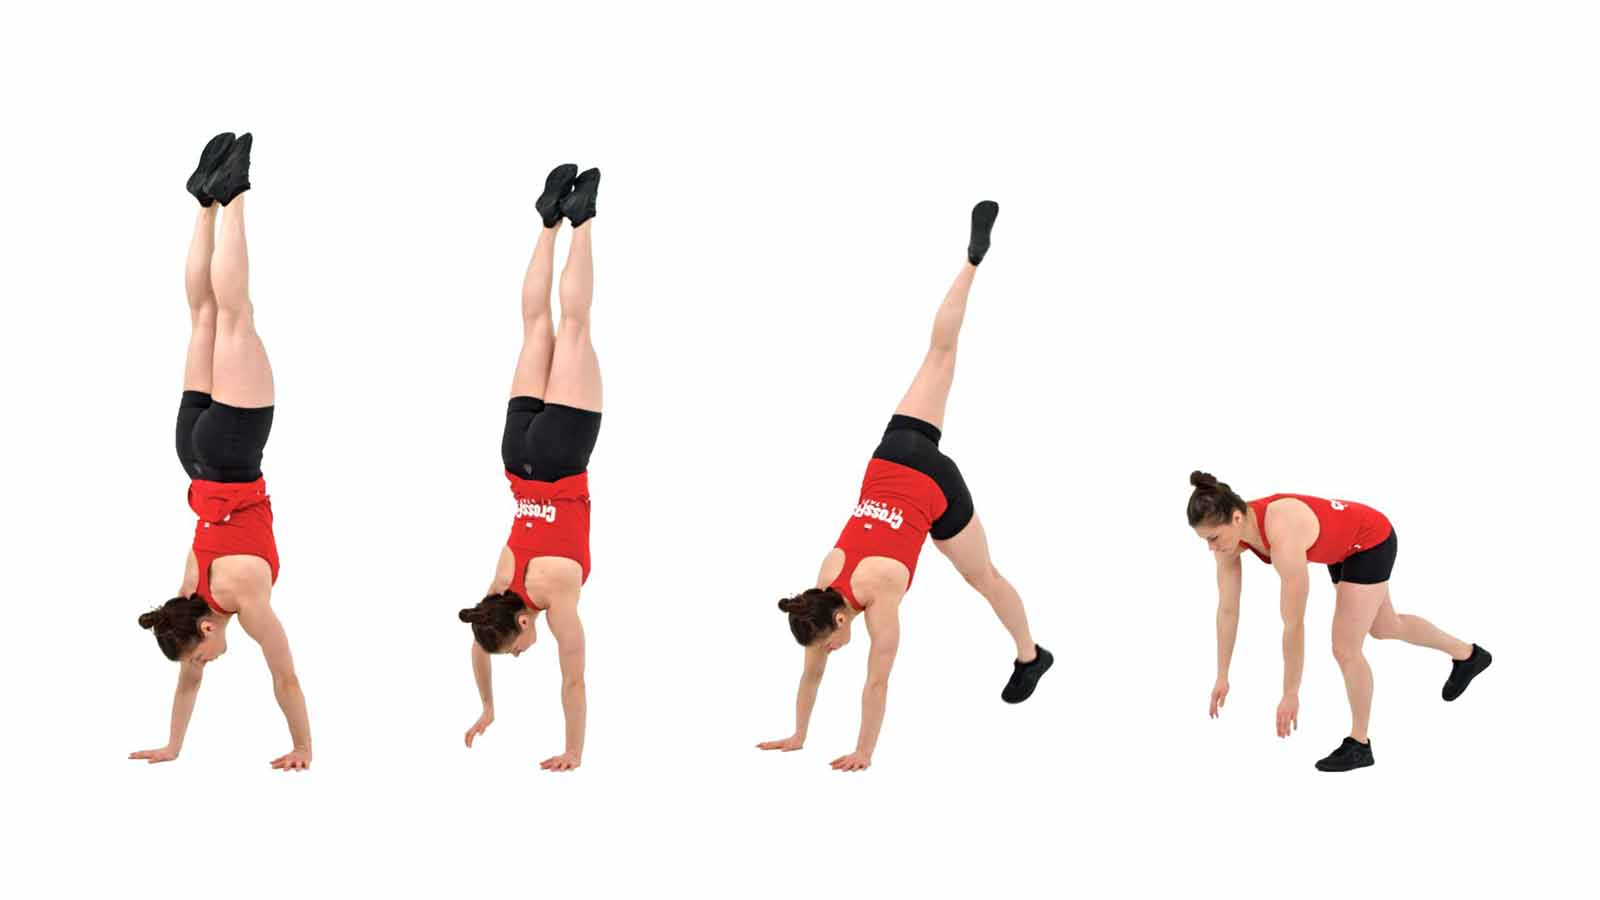 With gyms closed thanks to COVID-19, it's hard to get your work out in. But these at home Crossfit workouts are perfect no matter what equipment you have.